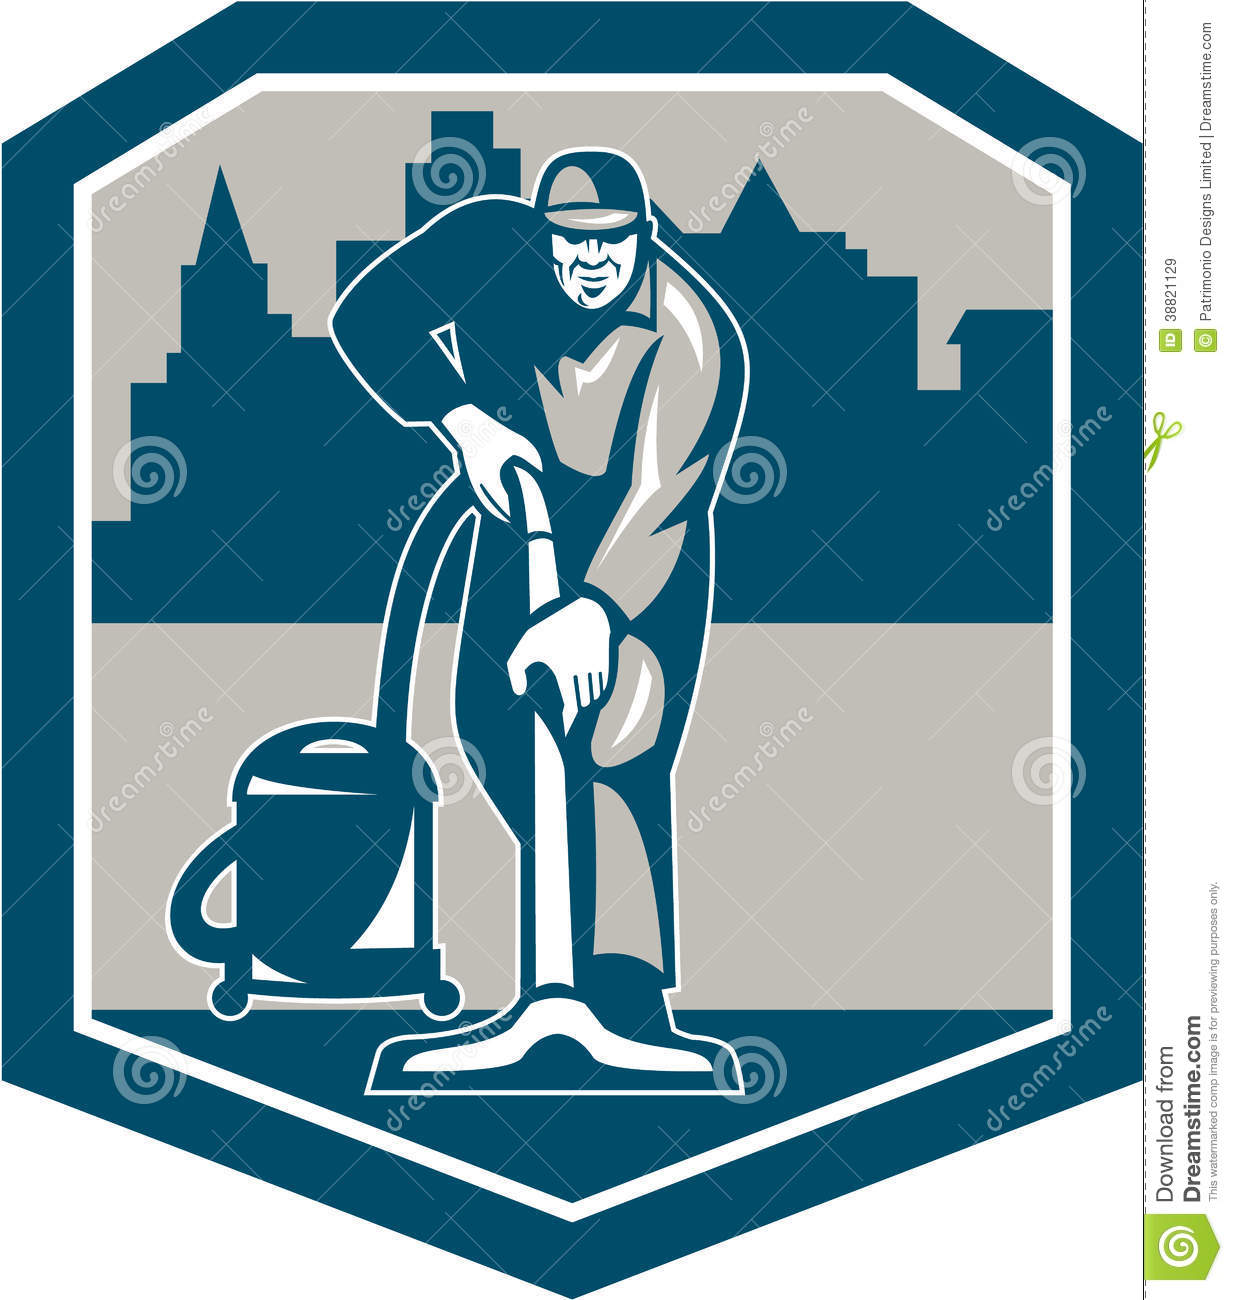 clip art illustrations cleaning - photo #34